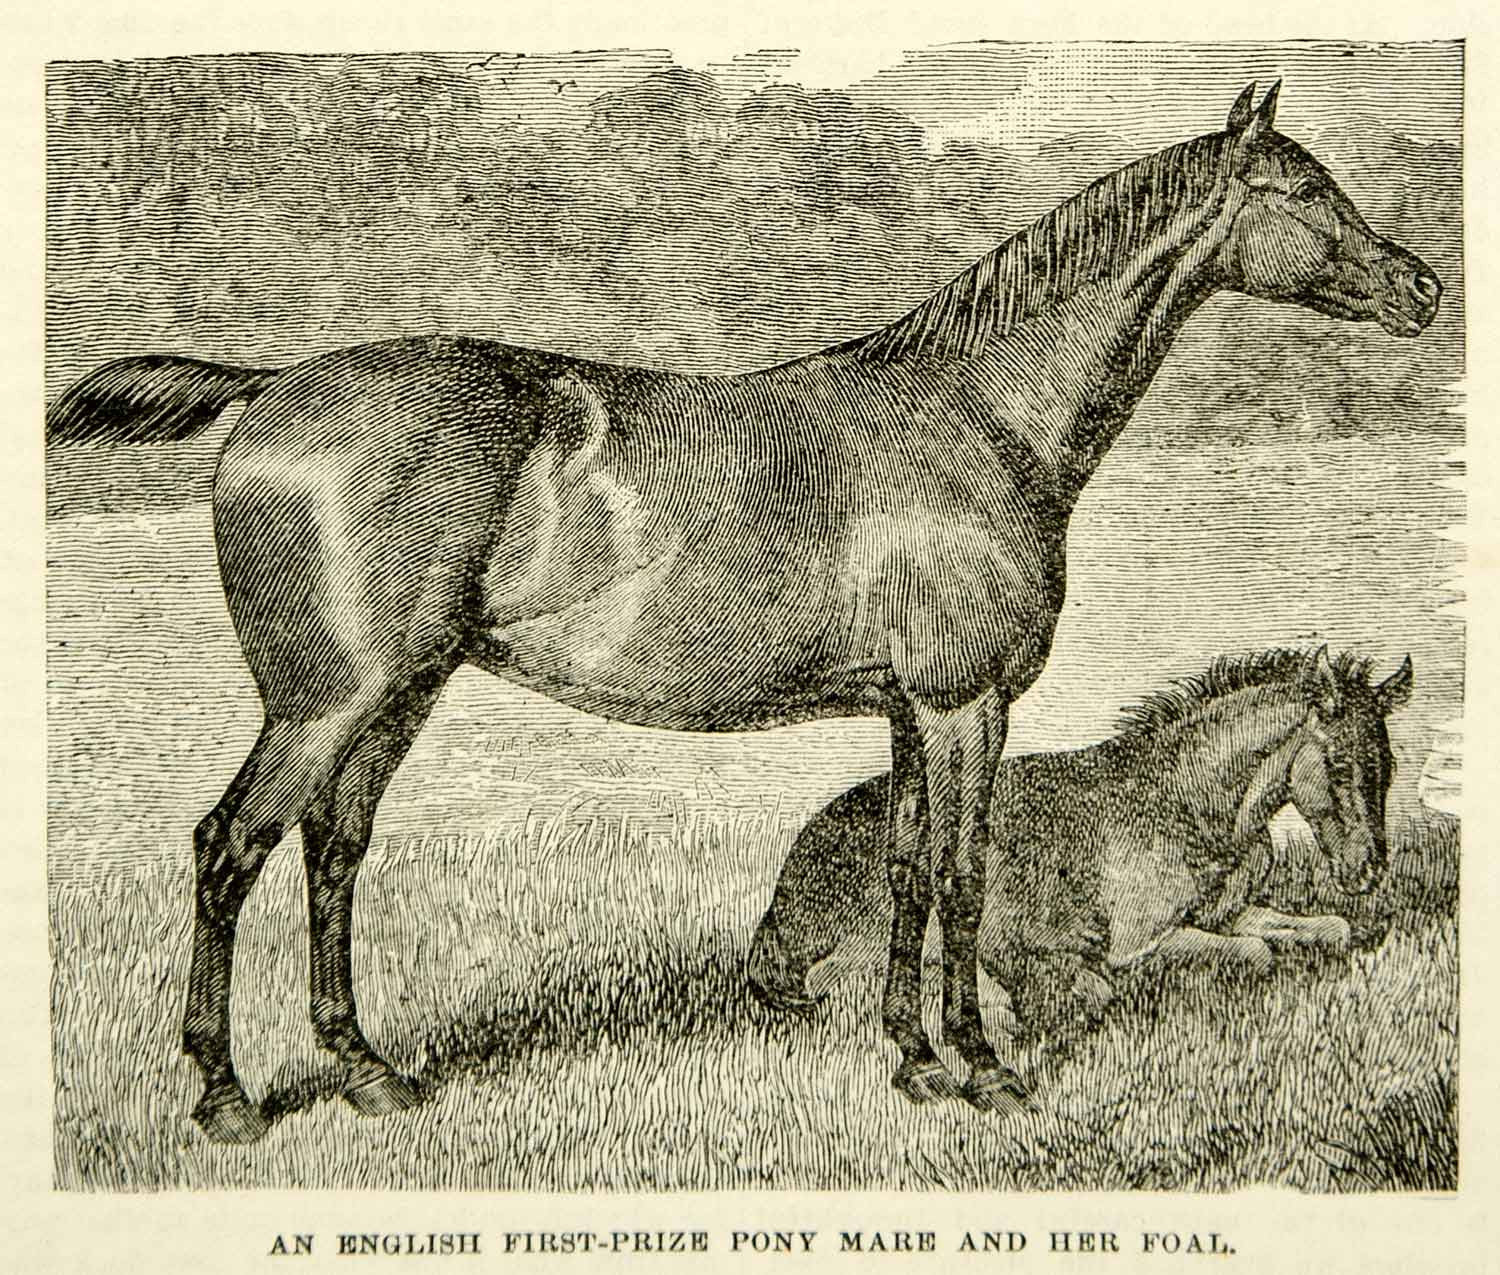 1893 Wood Engraving English Pony Mare Foal Equestrian Baby First Prize CCG2